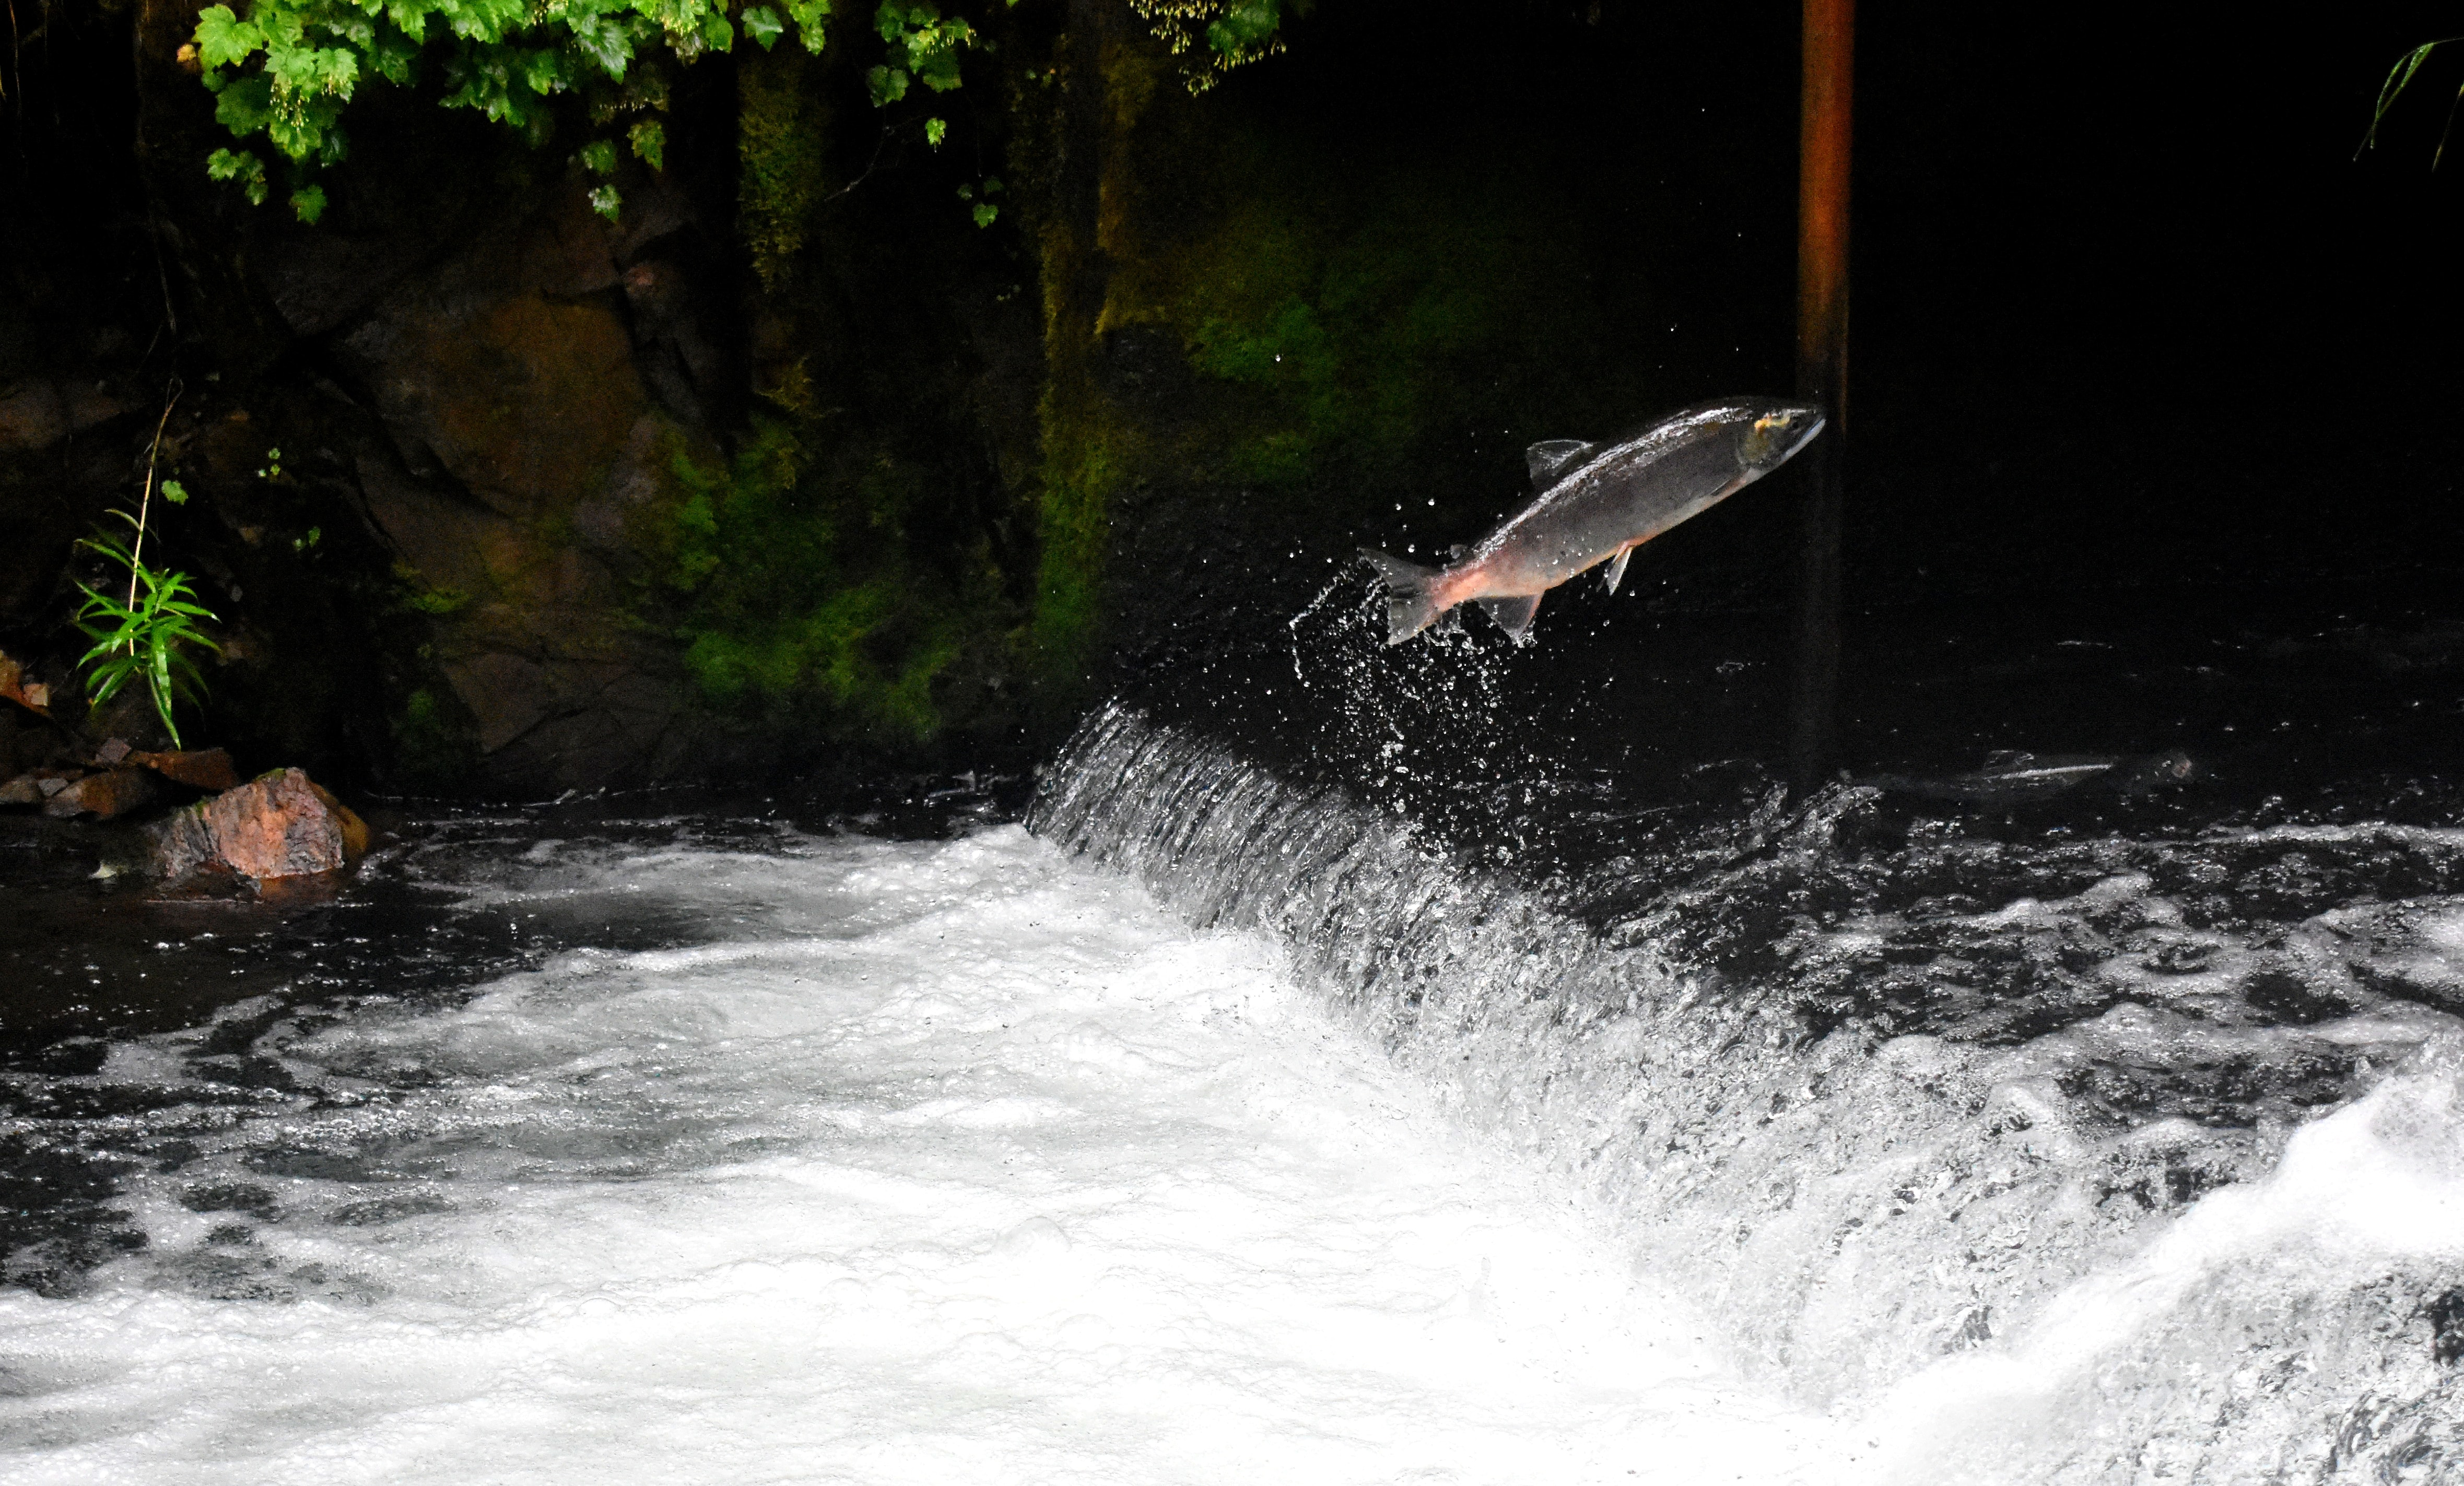 gray fish jumping over body of water surrounded with plants